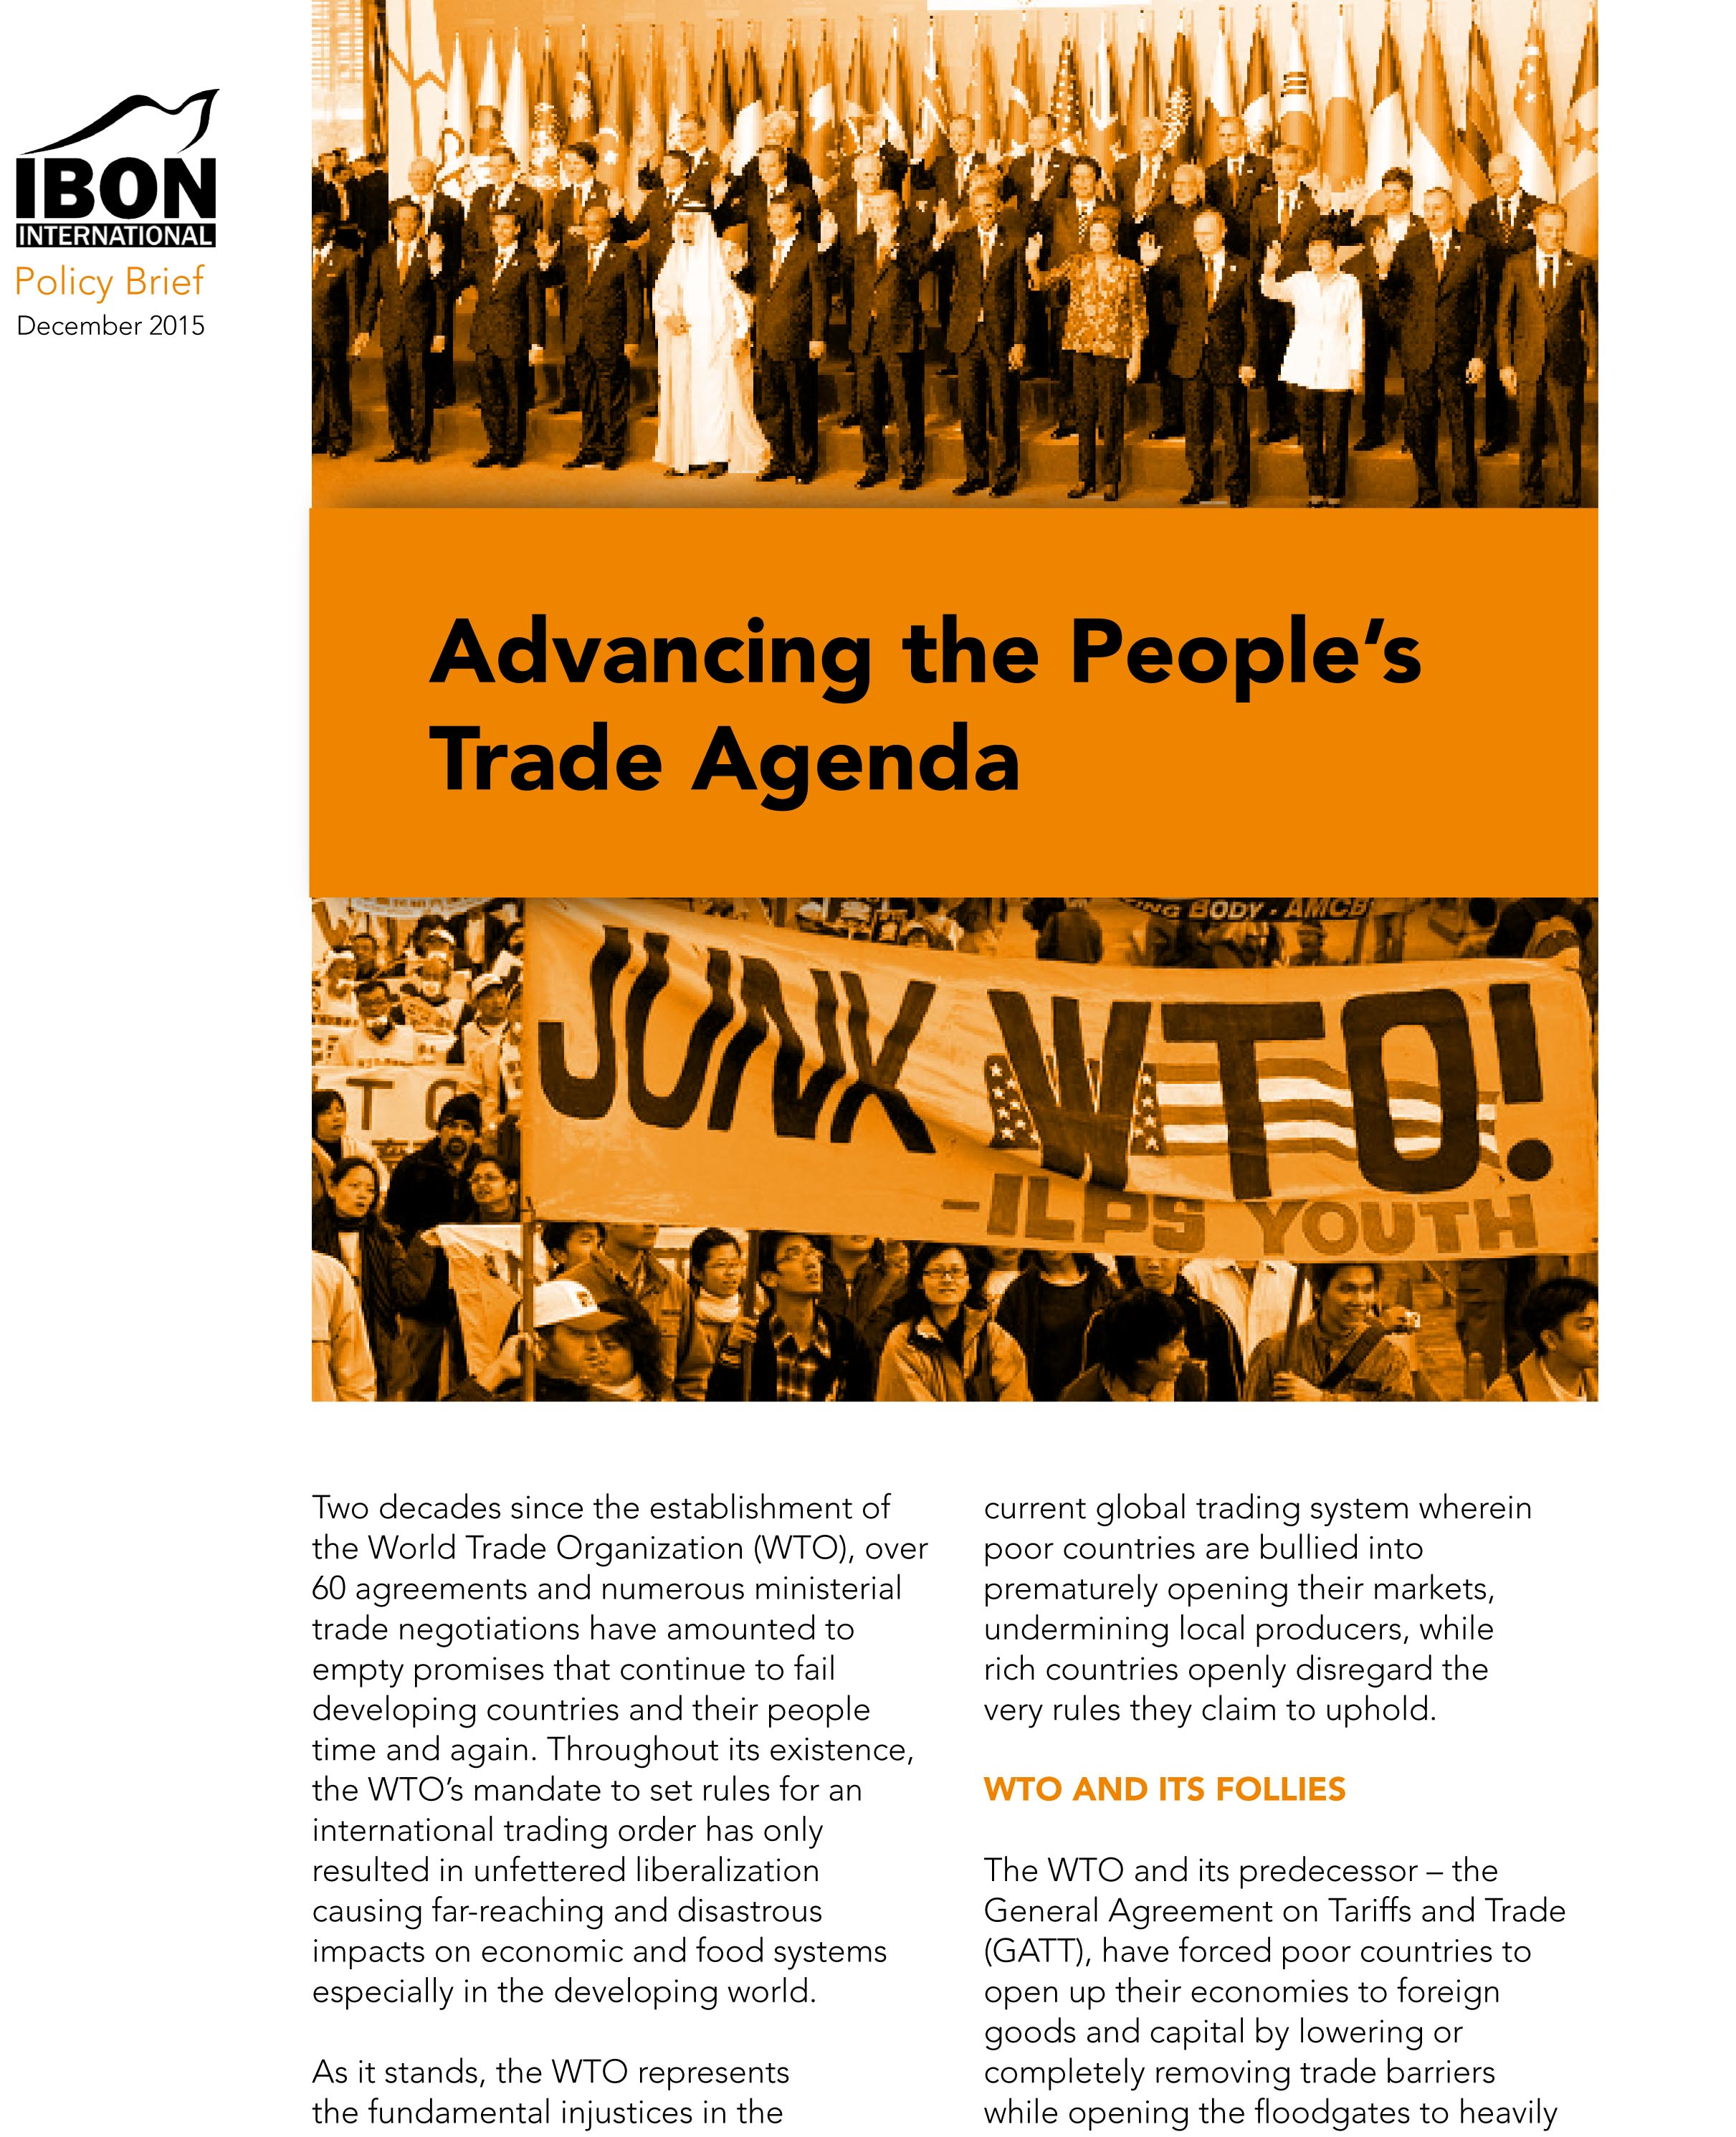 Advancing the People's Trade Agenda